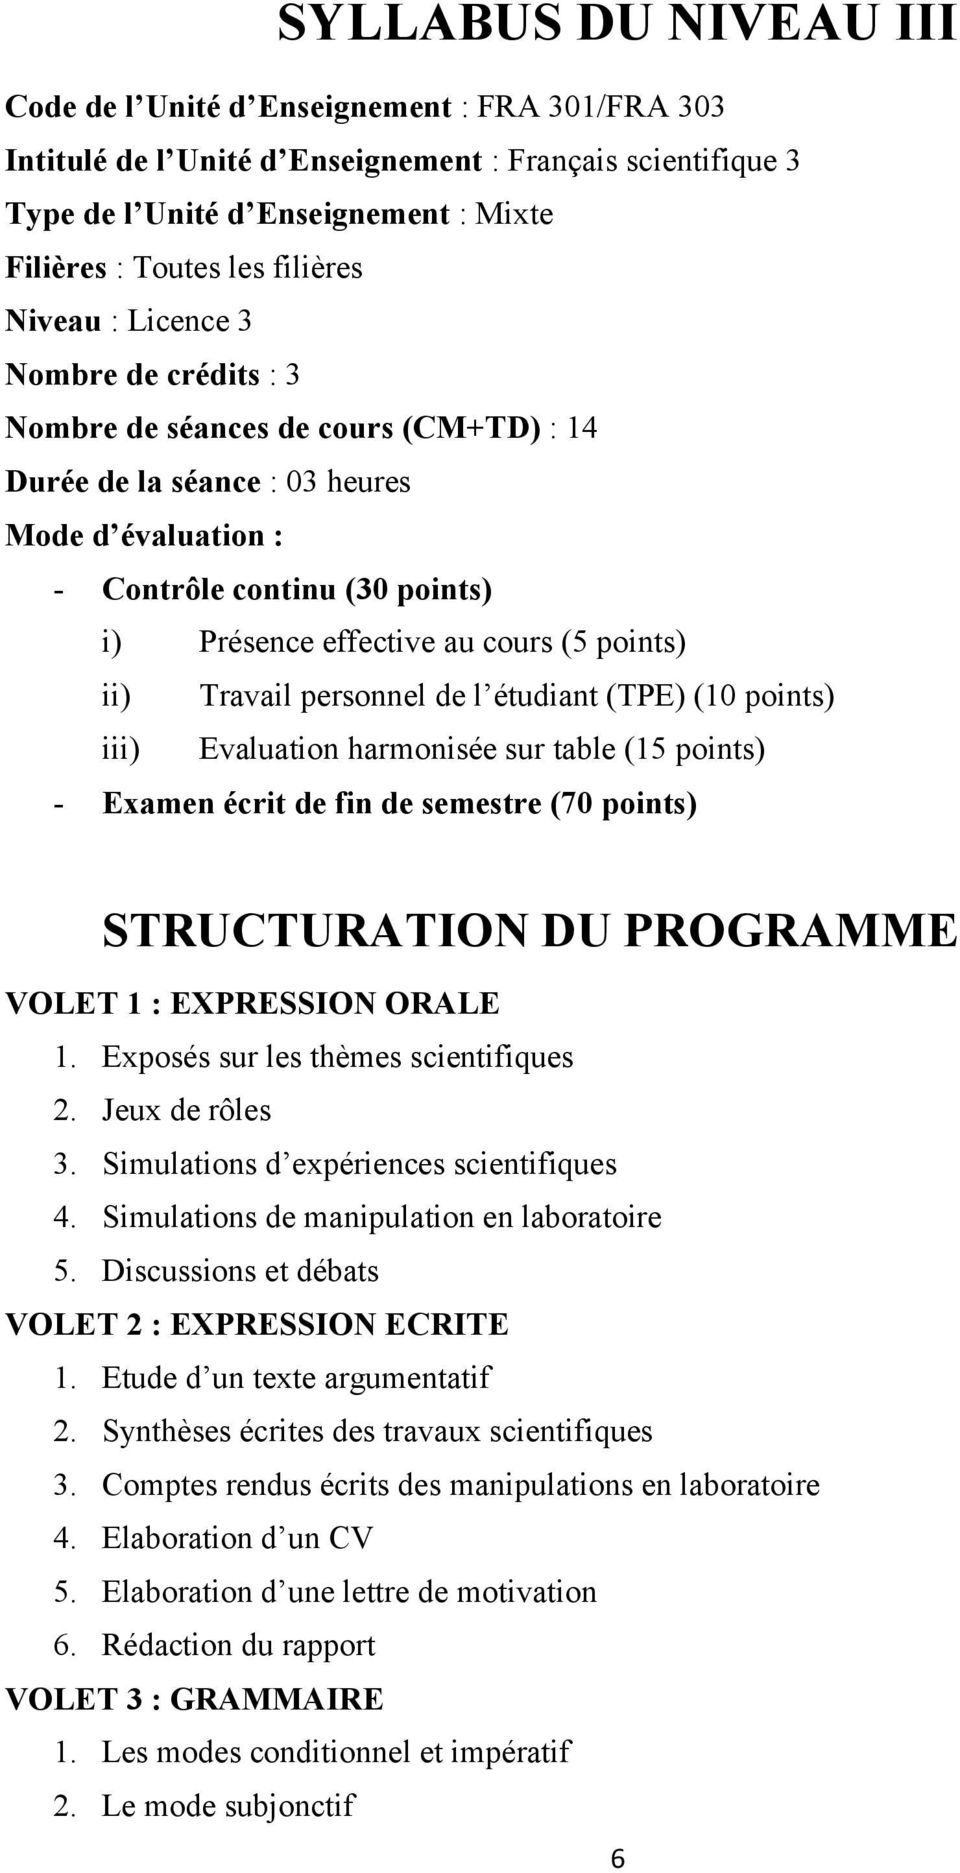 cours (5 points) ii) Travail personnel de l étudiant (TPE) (10 points) iii) Evaluation harmonisée sur table (15 points) - Examen écrit de fin de semestre (70 points) STRUCTURATION DU PROGRAMME VOLET